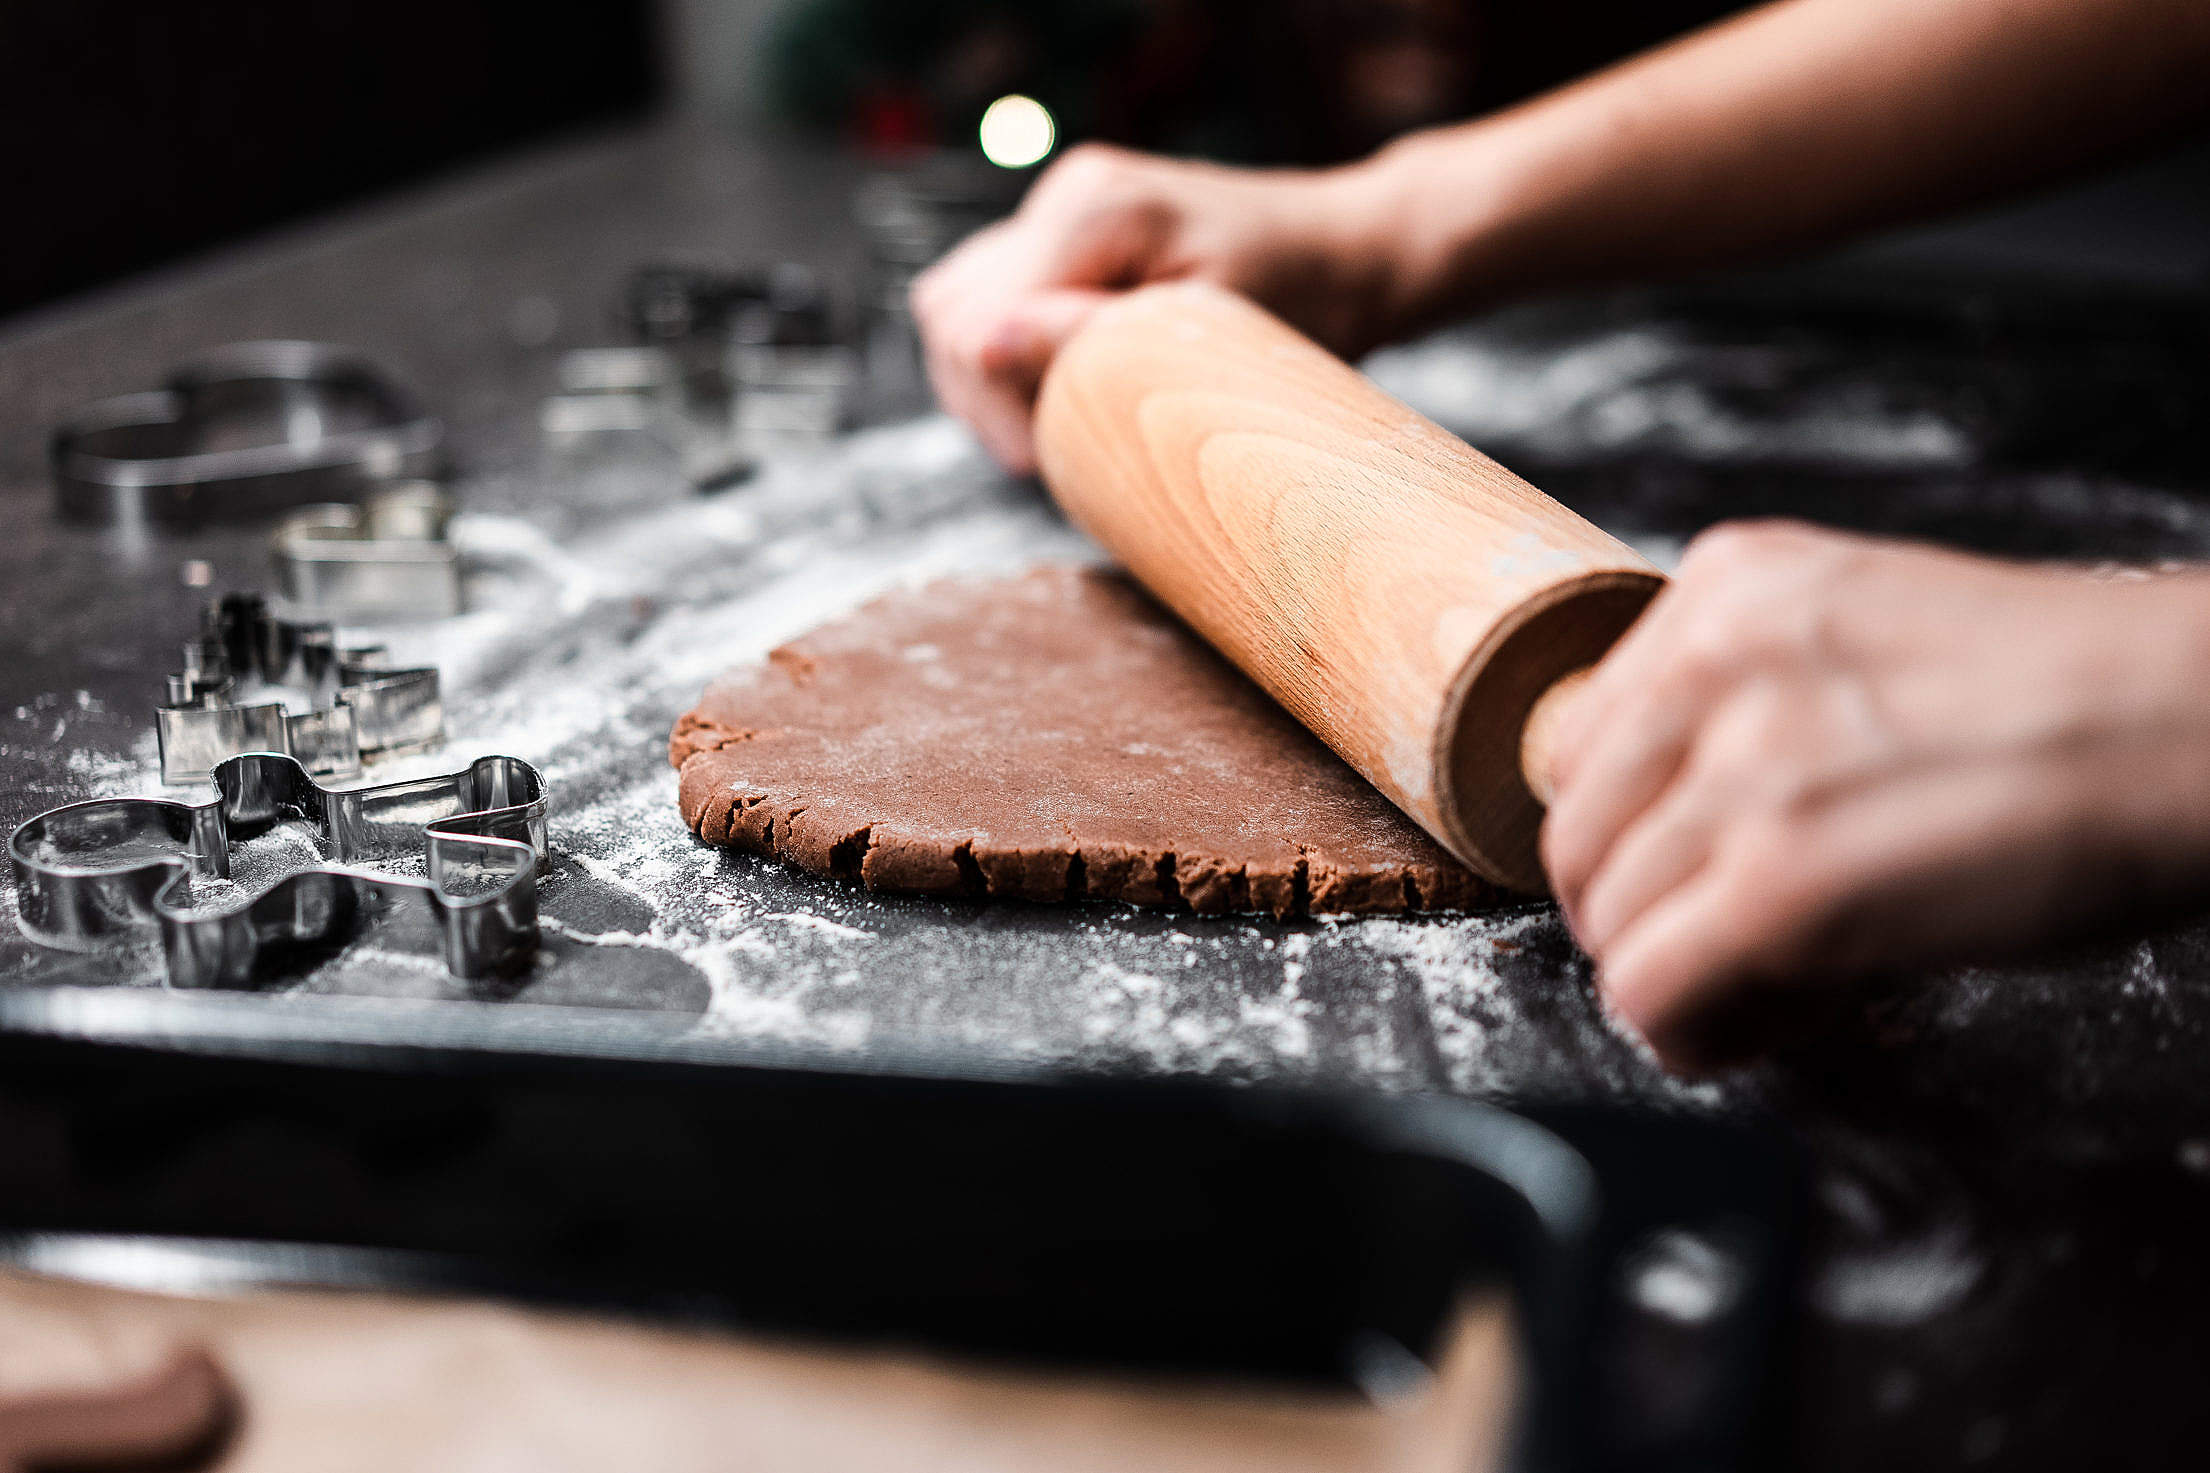 Rolling Homemade Gingerbread Dough for Christmas Biscuits Free Stock Photo